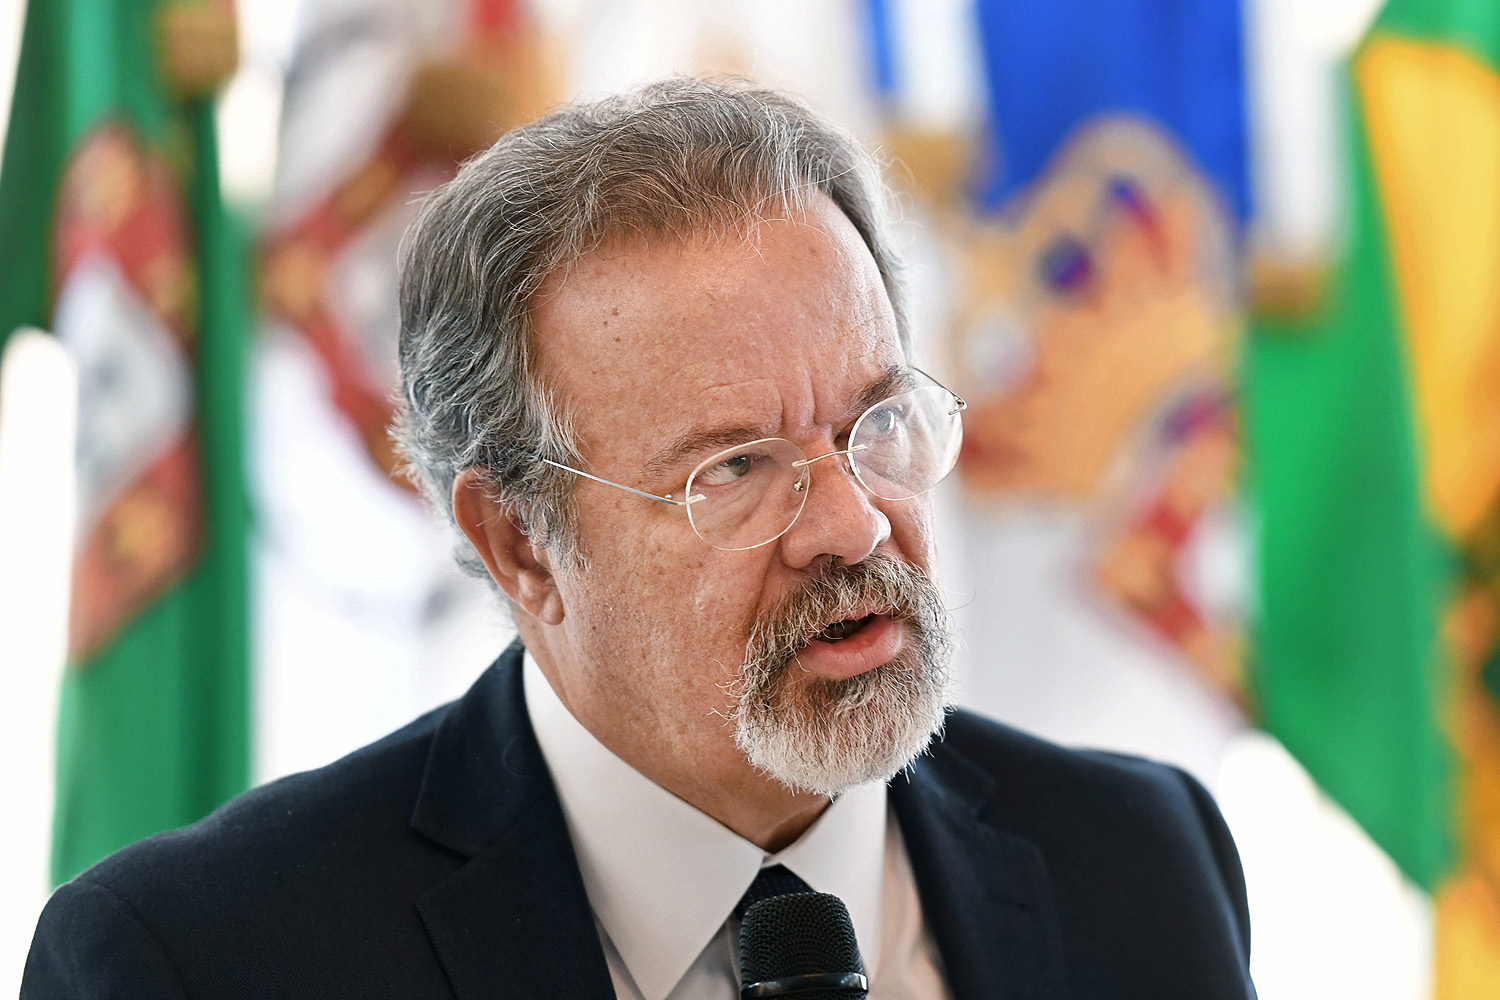 Brazilian Defence Minister Raul Jungmann talks with foreign correspondents during a breakfast meeting at the Ministry in Brasilia, on May 17, 2017. Jungmann announced the Brazilian embassy will resume functions in Caracas after a closure of about nine months due to Venezuela's comments against the impeachment of Brazilian former president Dilma Rousseff. / AFP PHOTO / EVARISTO SA